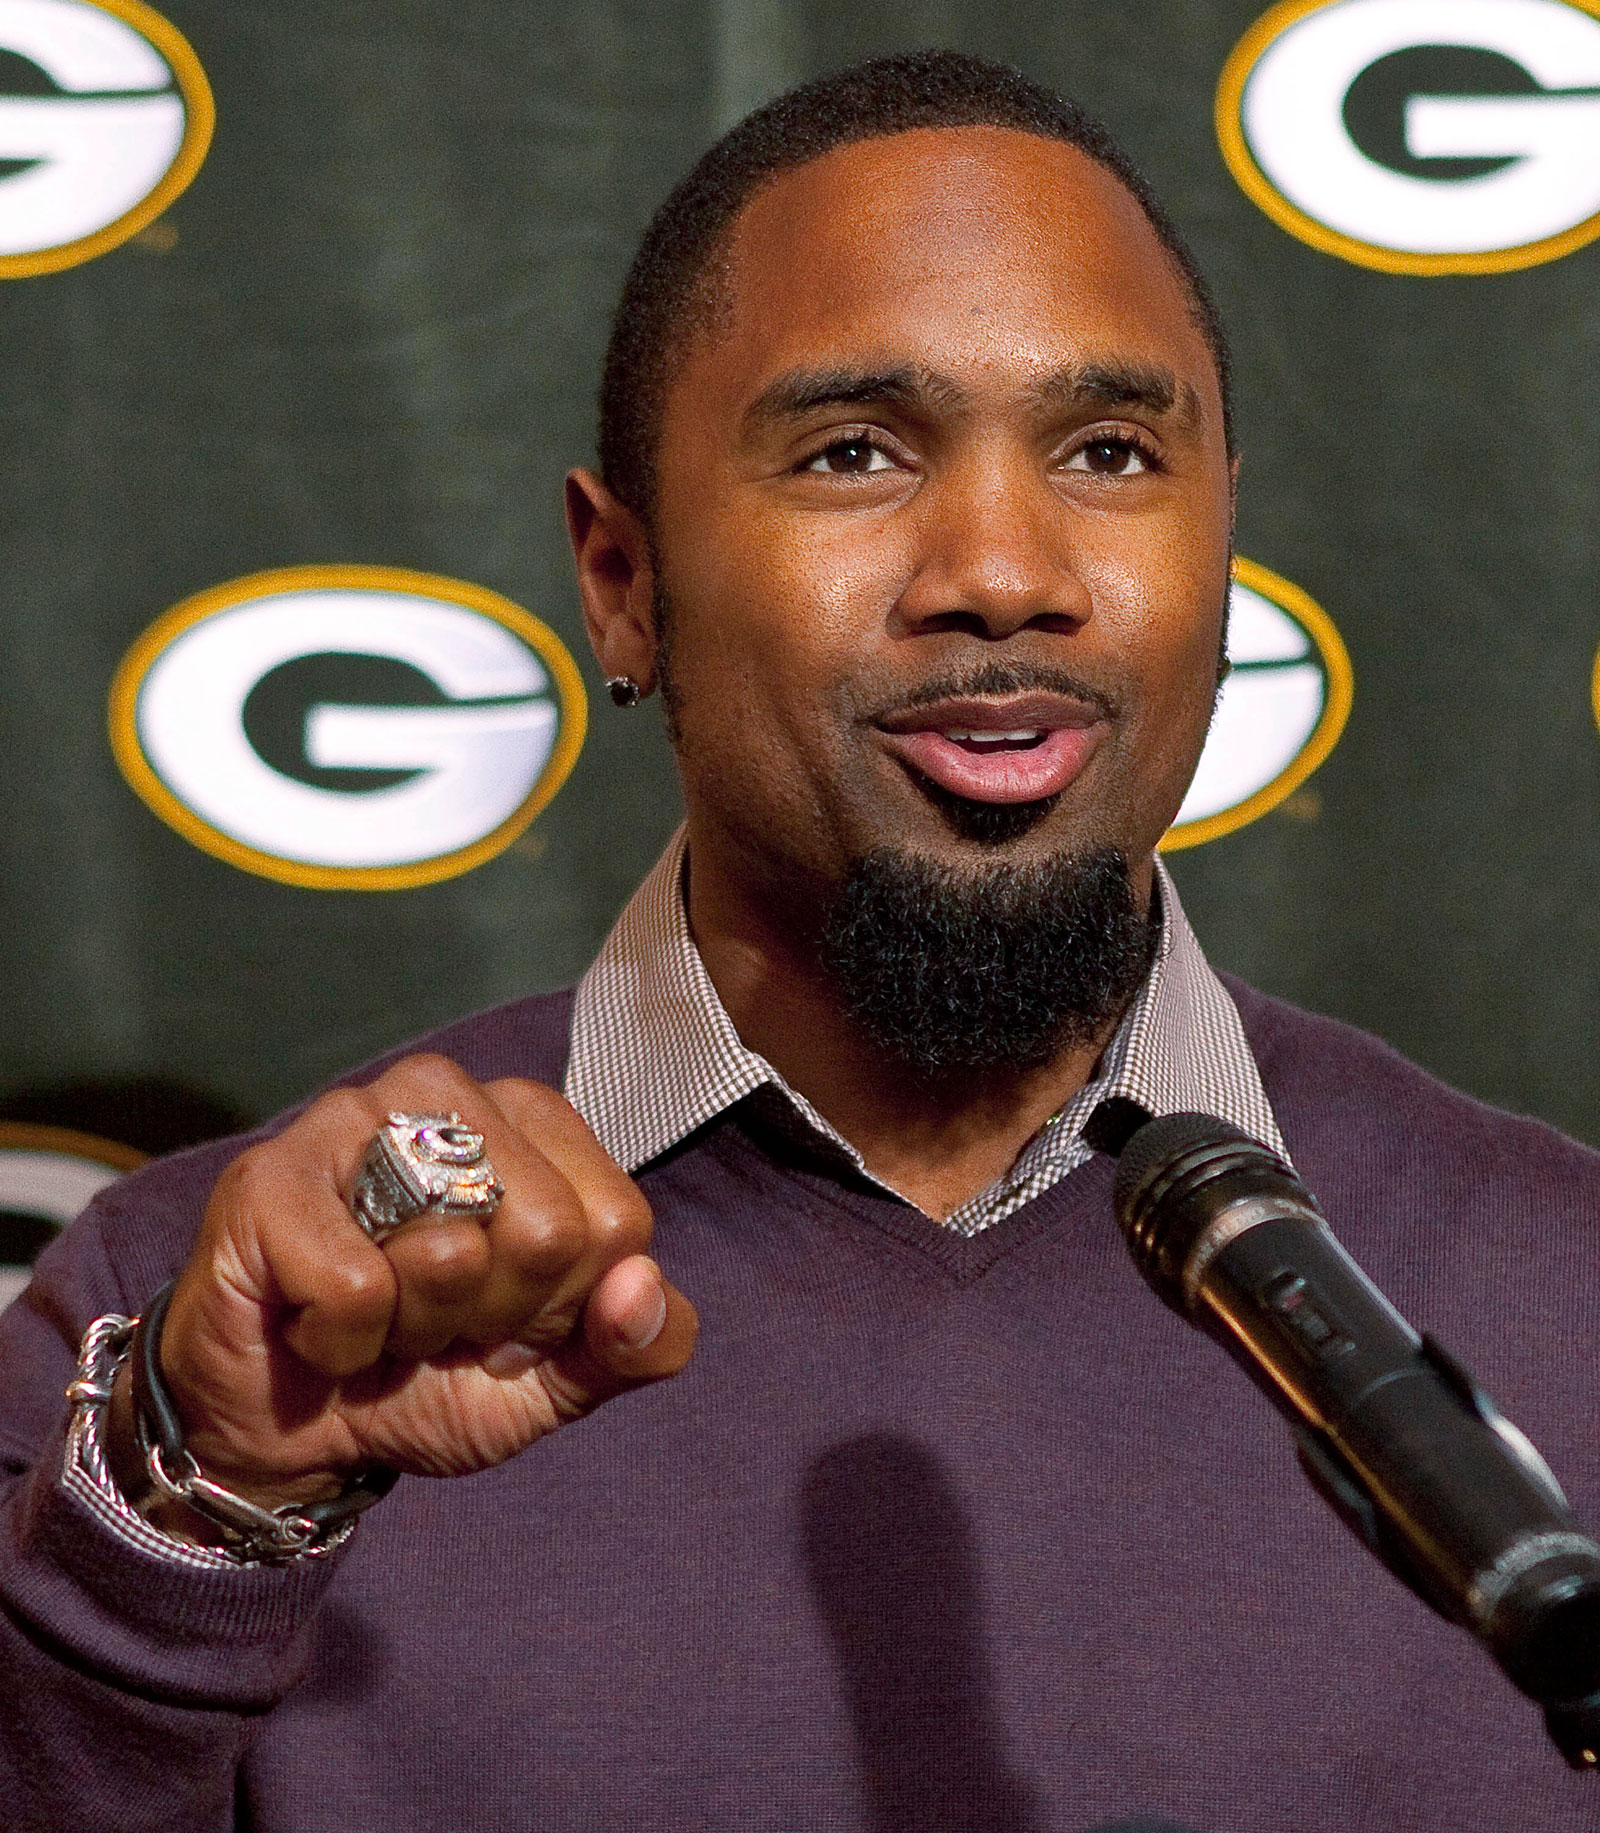 Green-Bay-Packers-Charles-Woodson-shows-off-his-Super-Bowl-ring